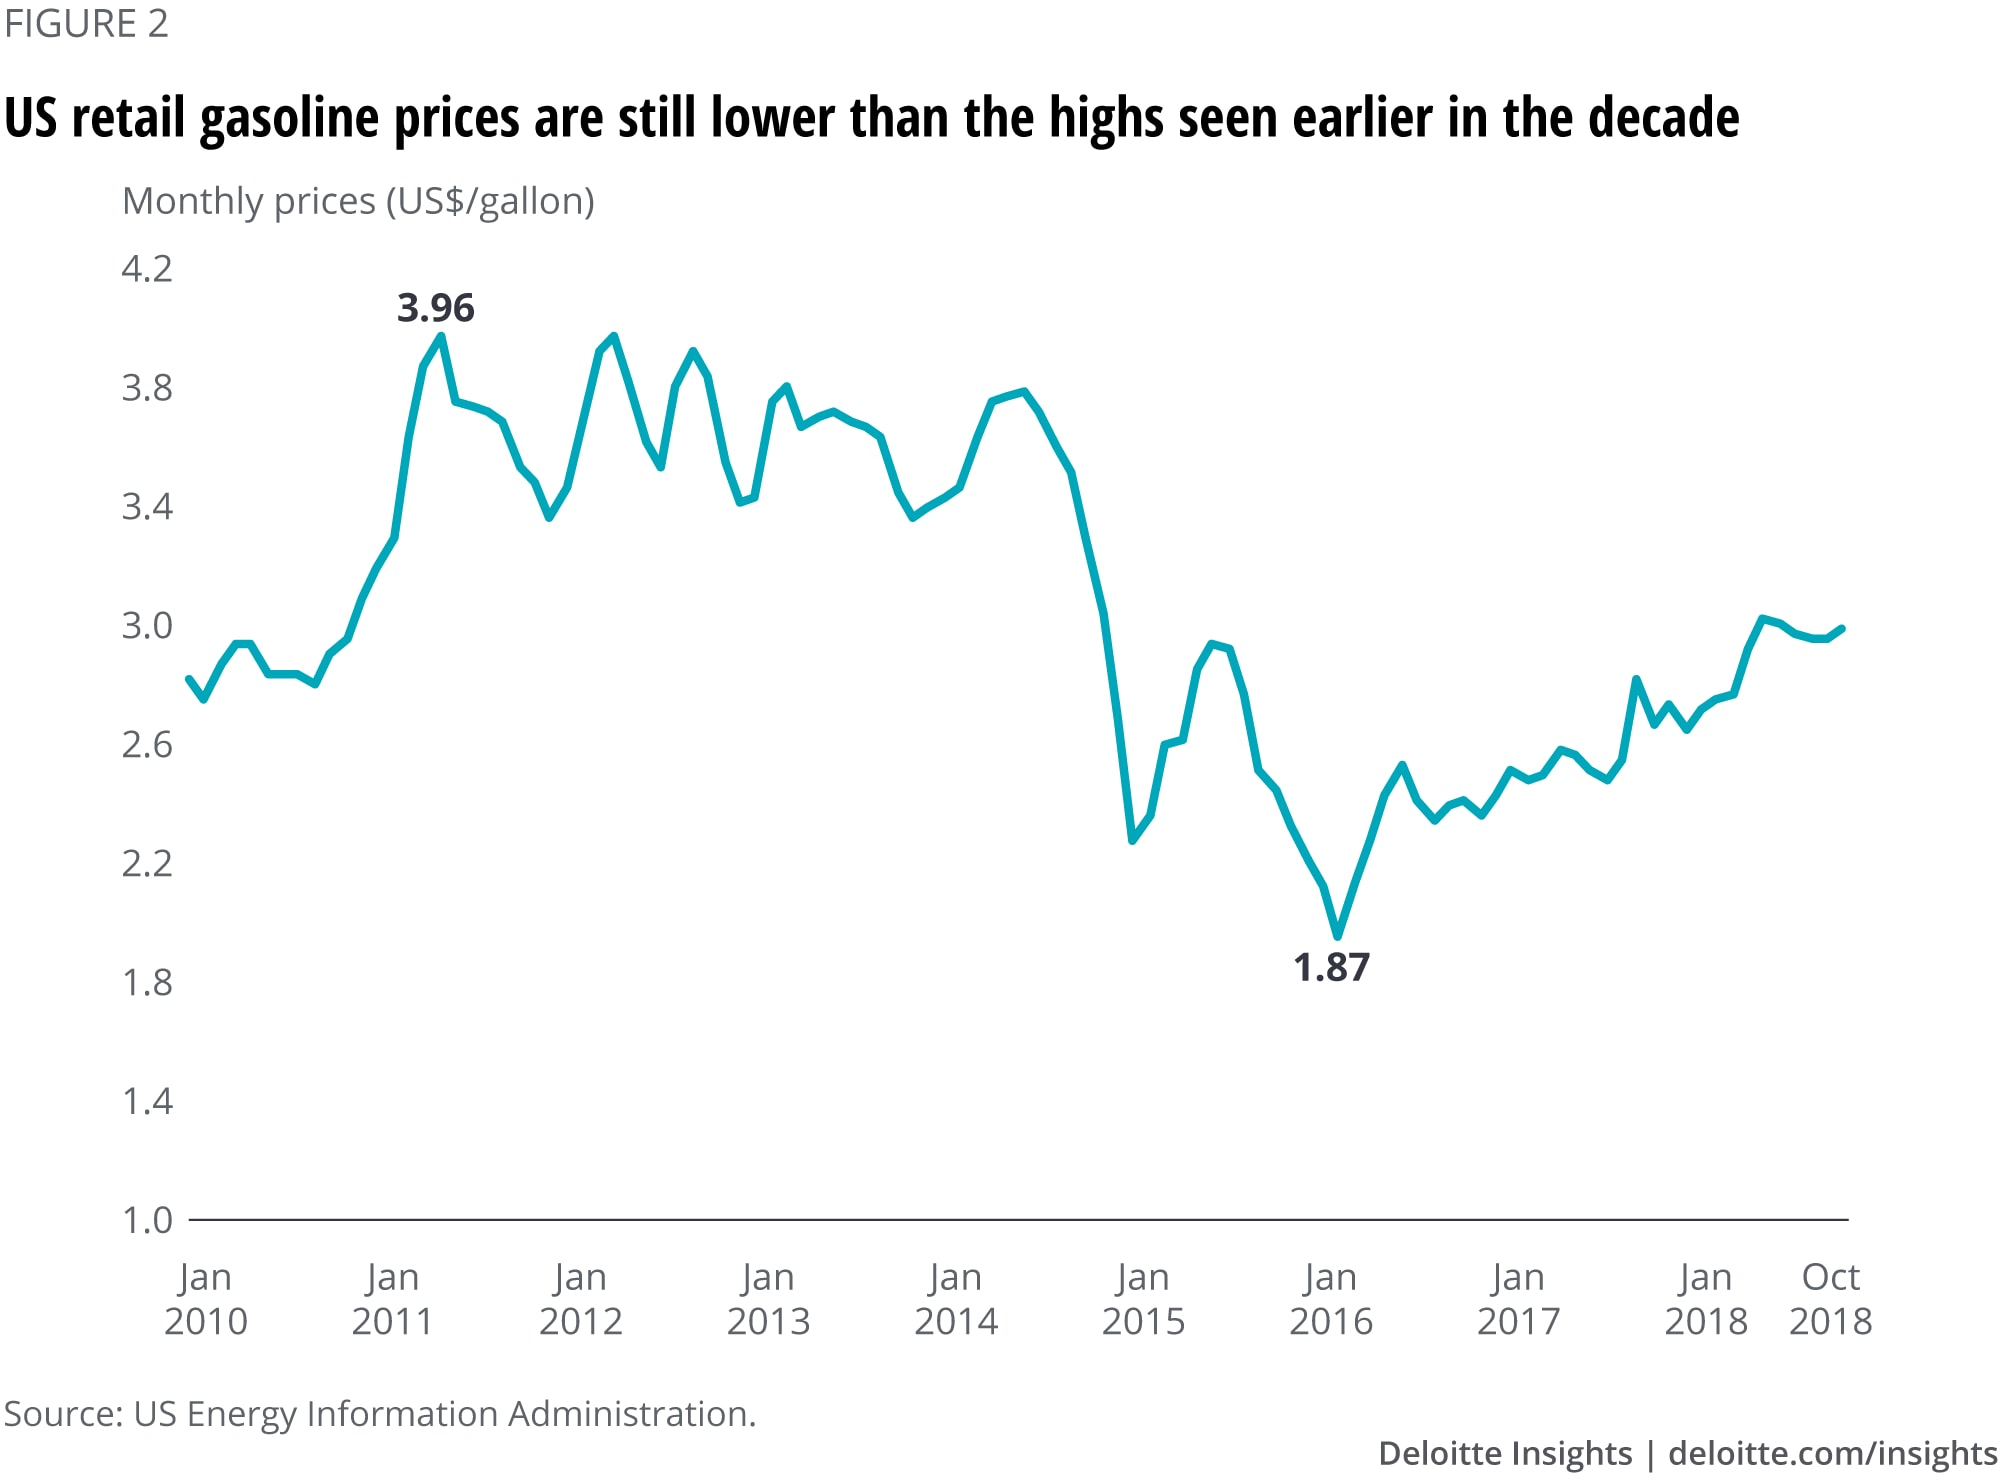 US retail gasoline prices are still lower than the highs seen earlier in the decade